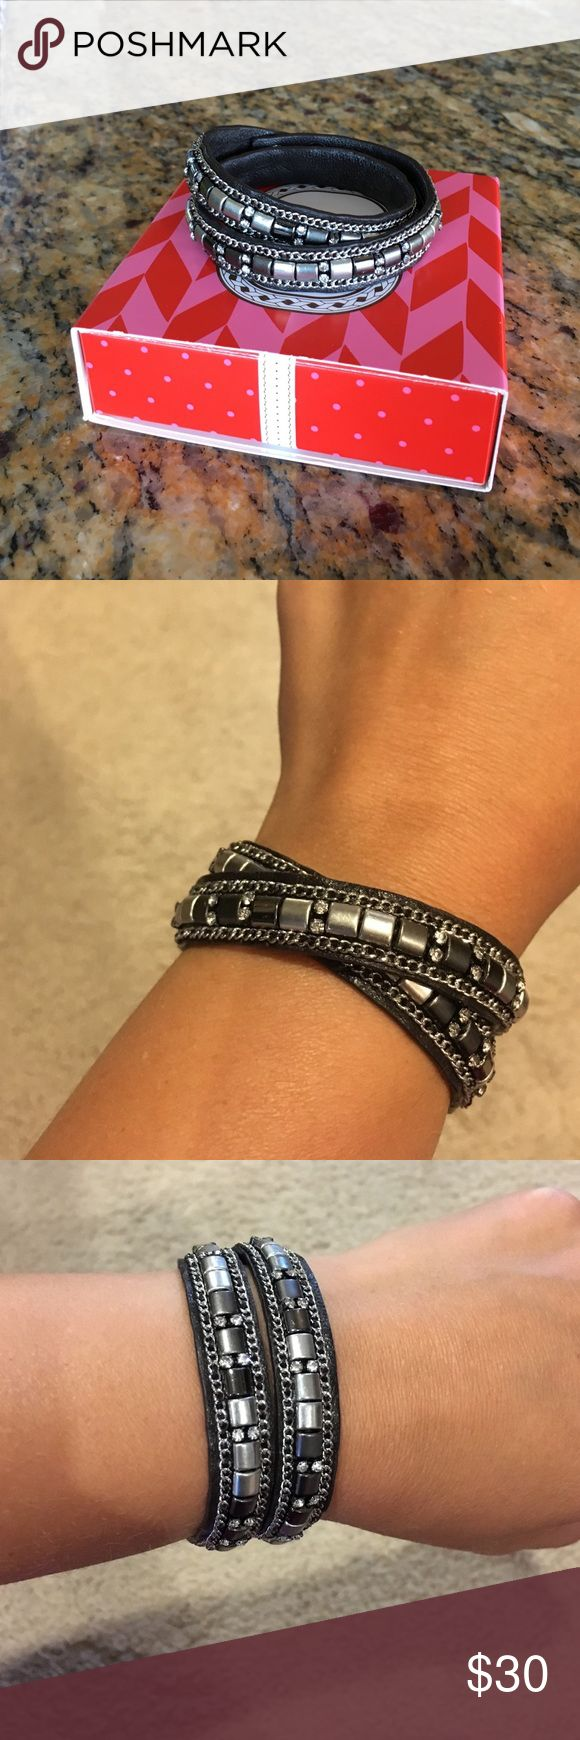 Stella and Dot Cady Wrap Silver Stella and Dot Cady Wrap bracelet-silver. Size M/L. Band is black lamb skin. Hand embroidered and beaded. New With Box. Stella & Dot Jewelry Bracelets